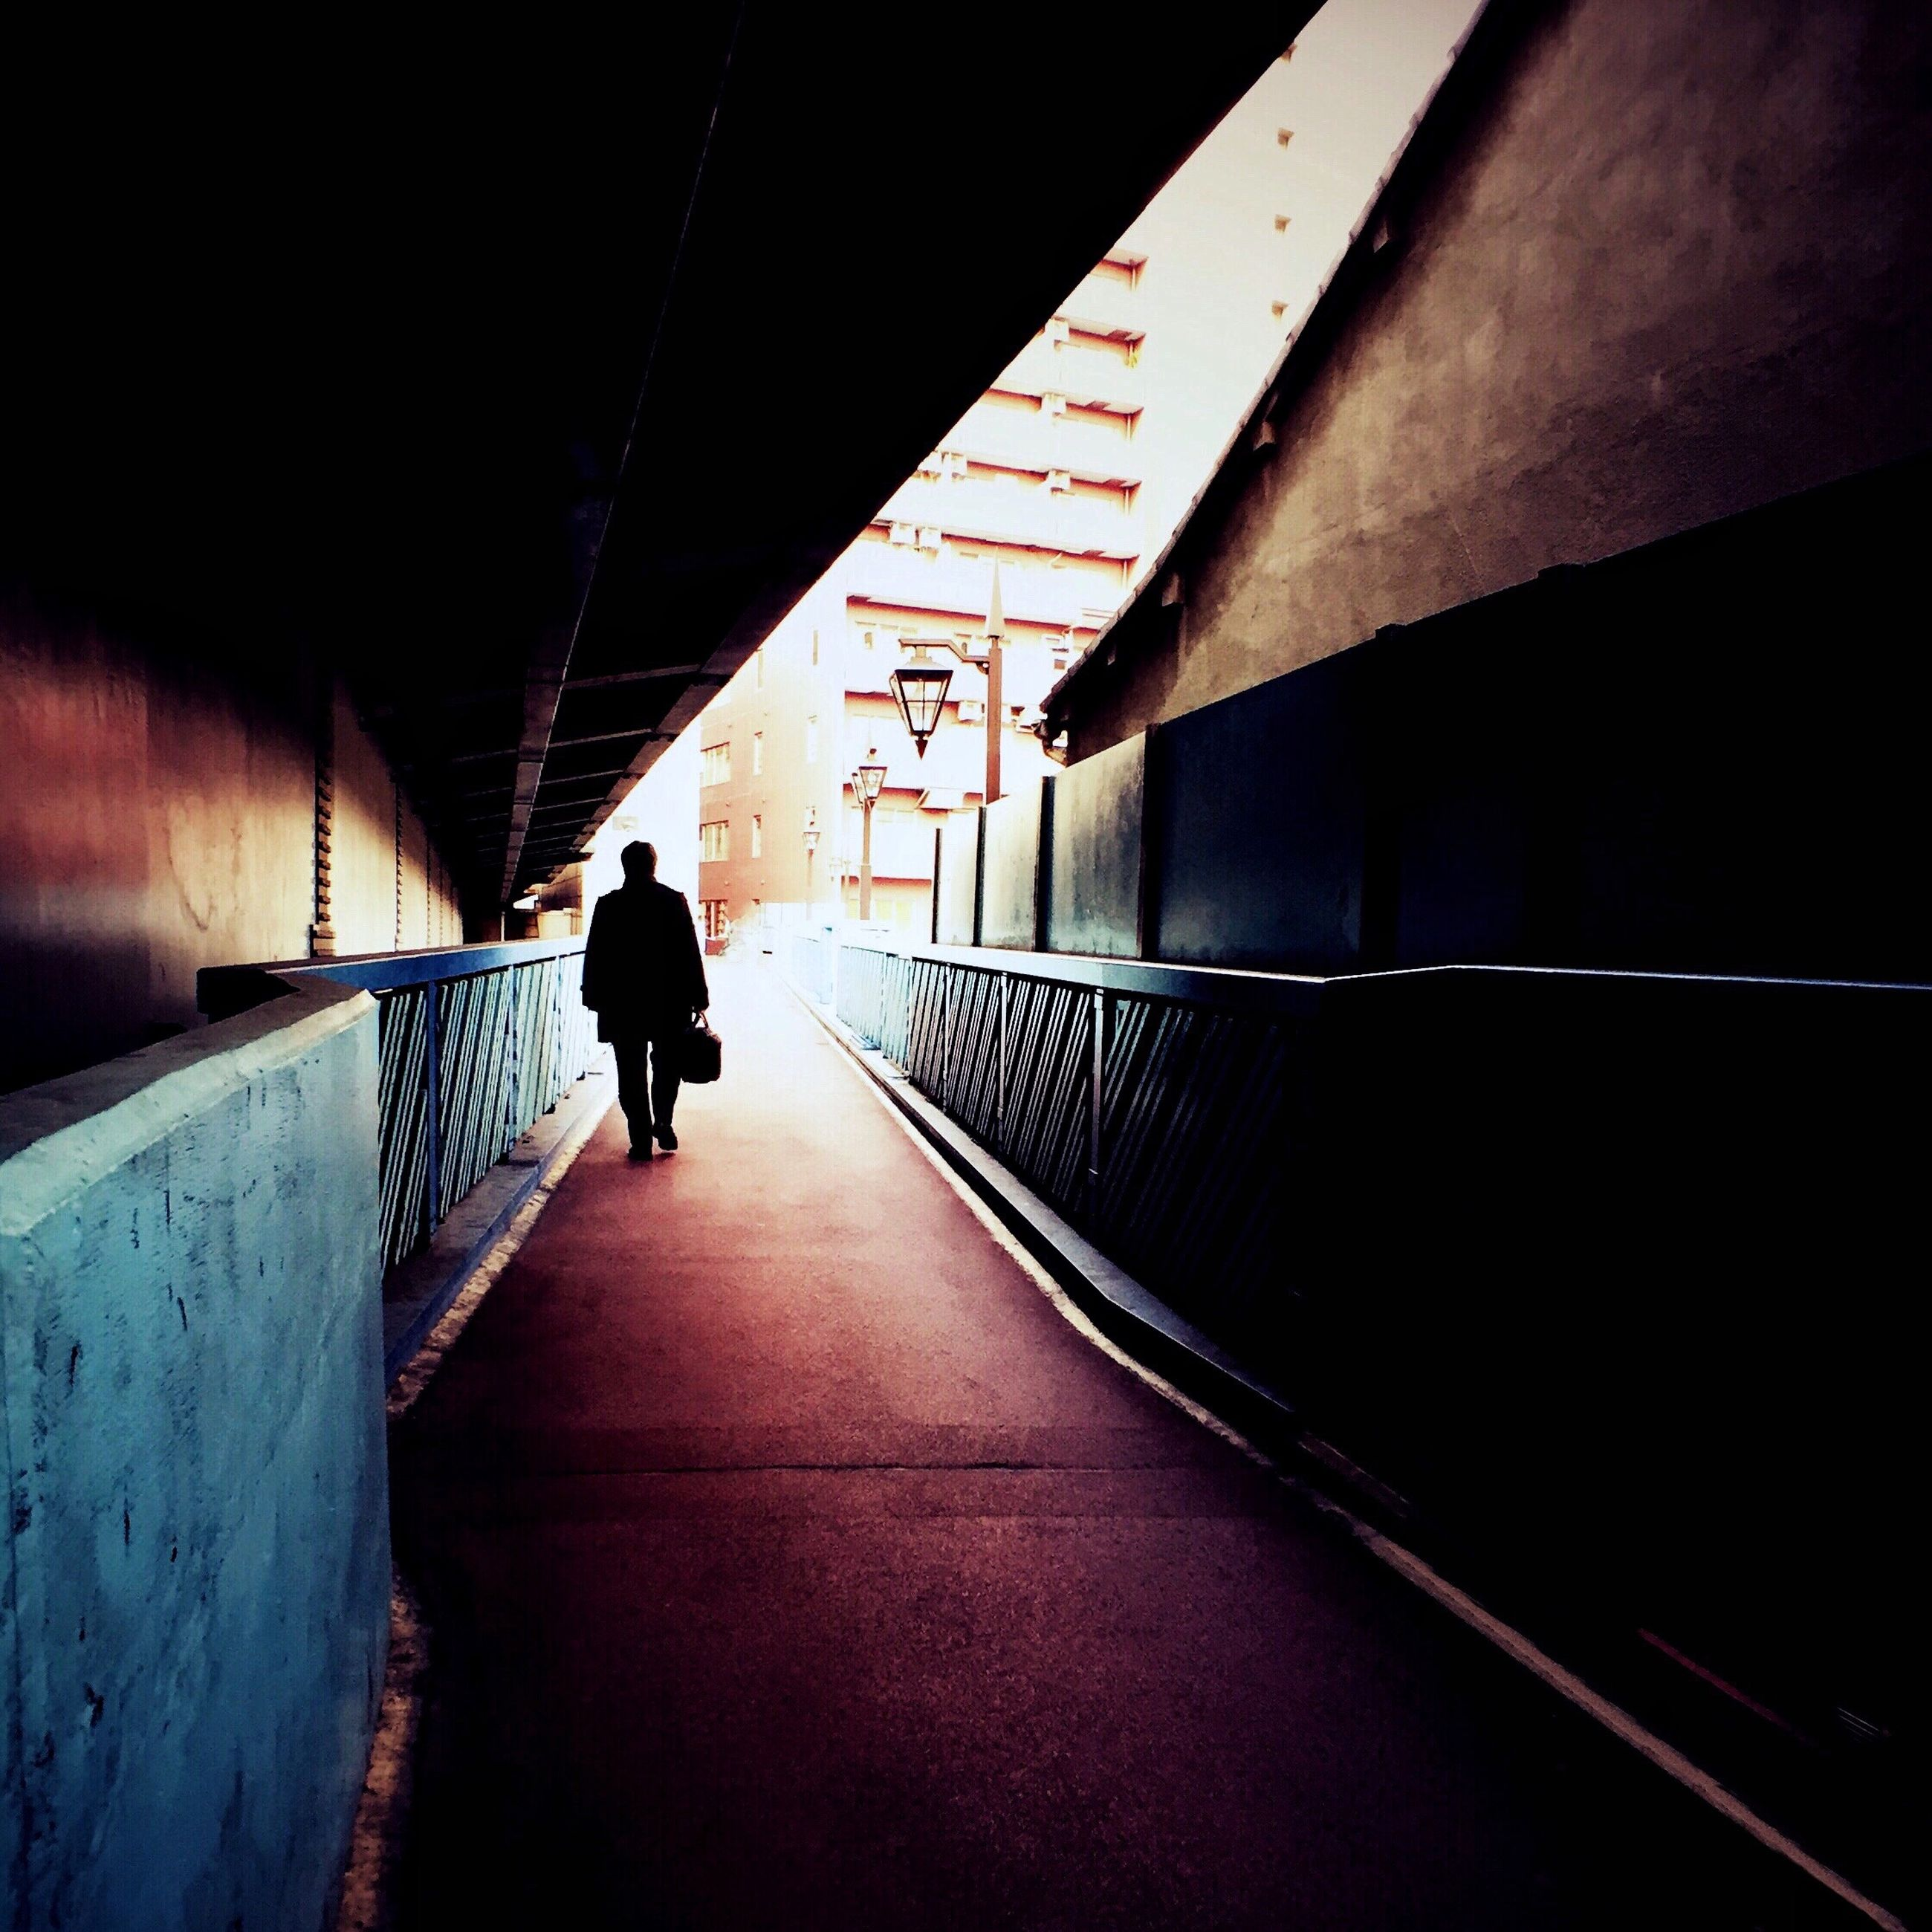 walking, full length, rear view, the way forward, men, lifestyles, architecture, built structure, silhouette, person, diminishing perspective, leisure activity, building exterior, indoors, wall - building feature, unrecognizable person, vanishing point